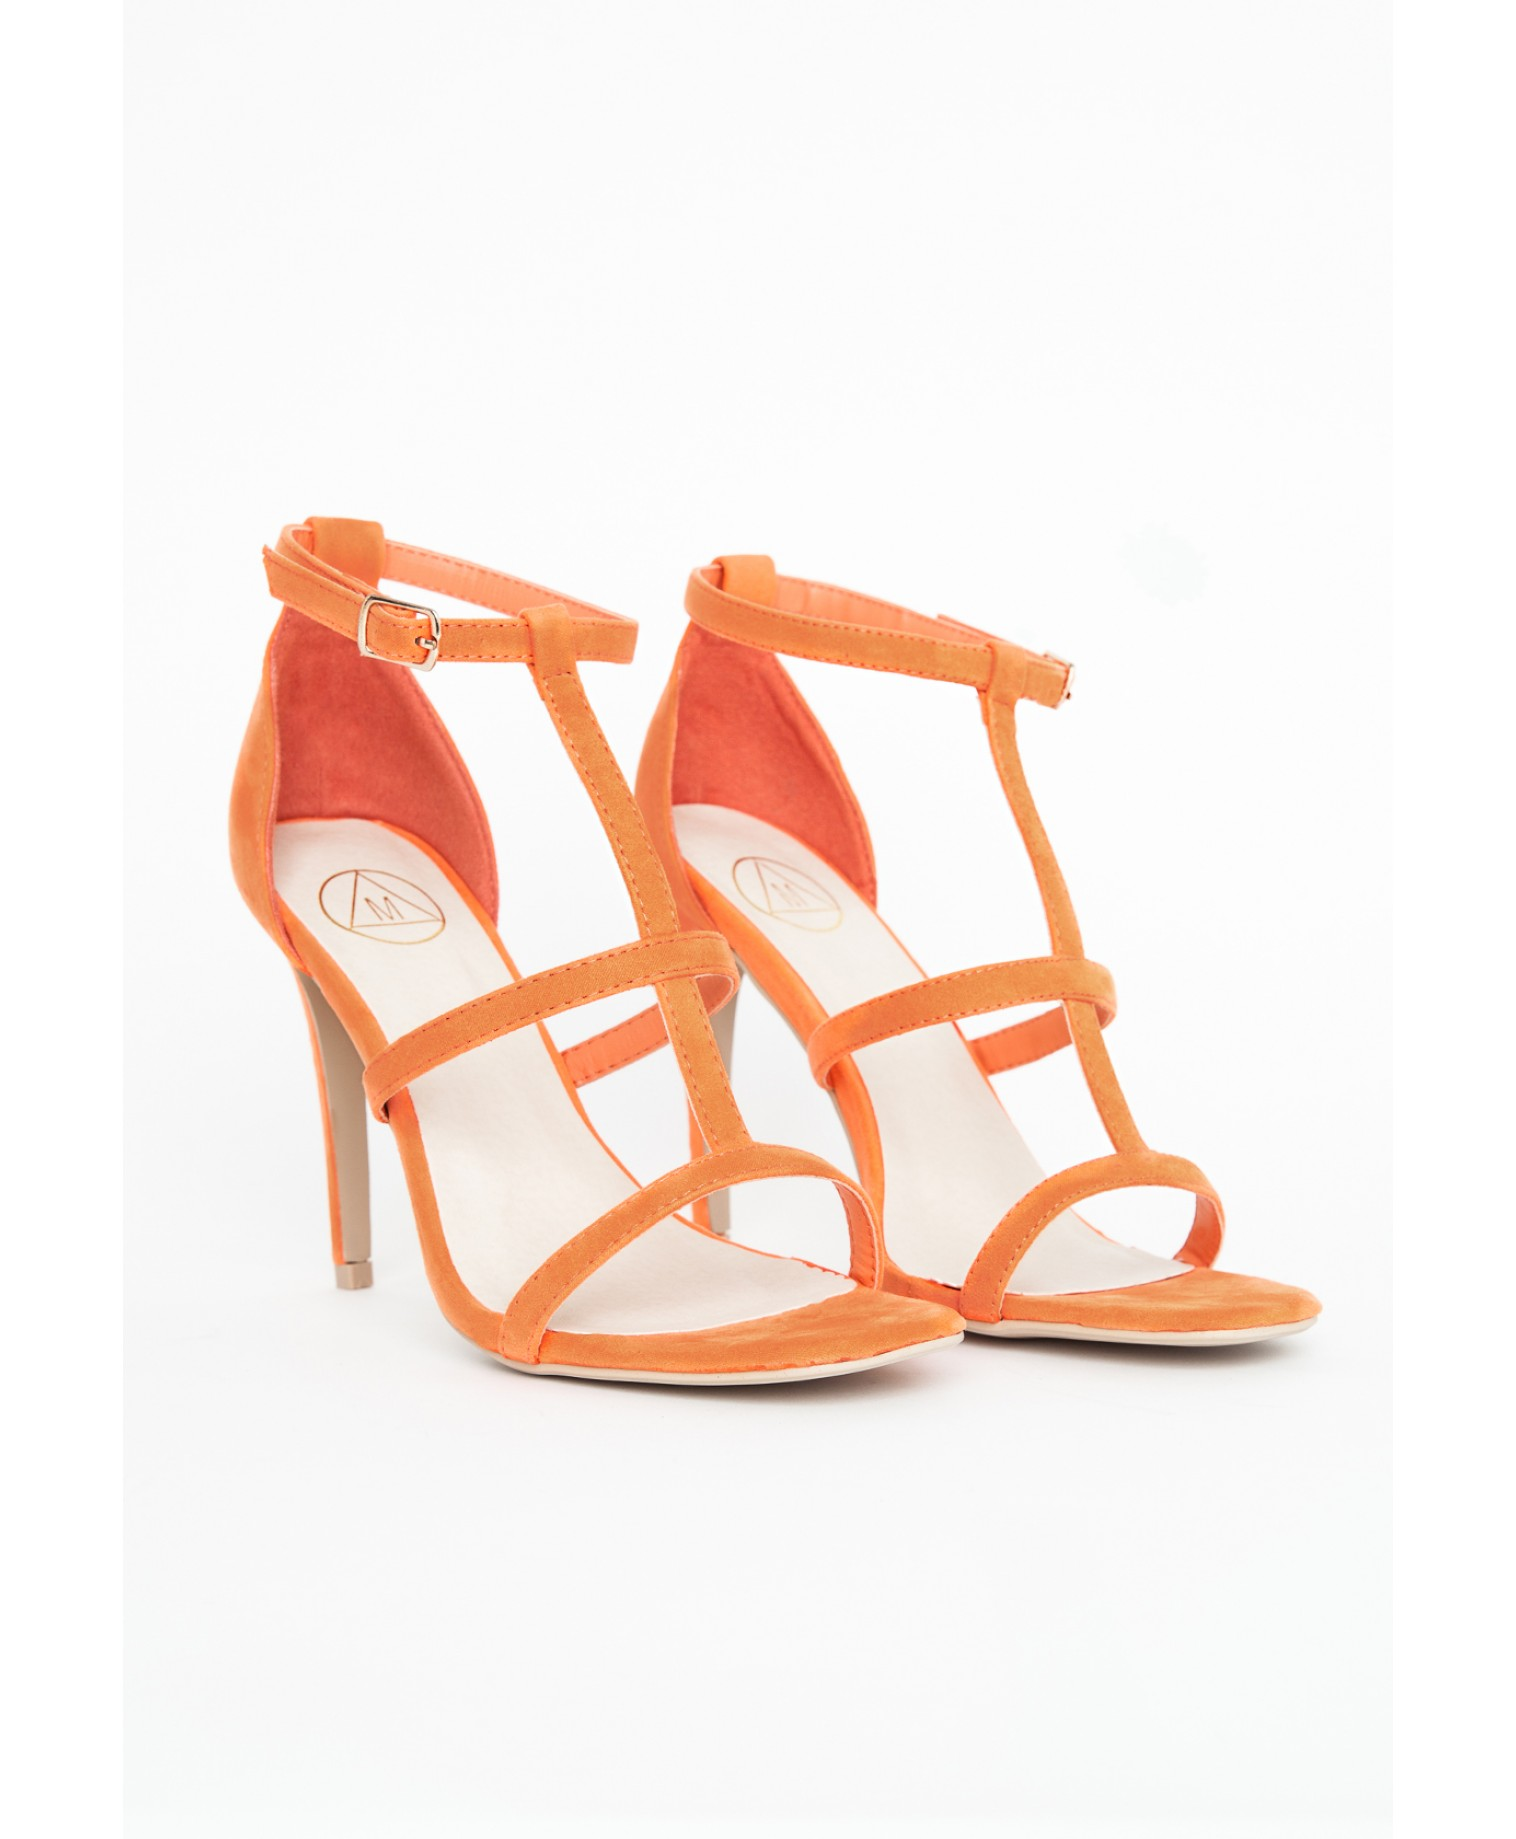 Gemma caged heel sandals in orange 1